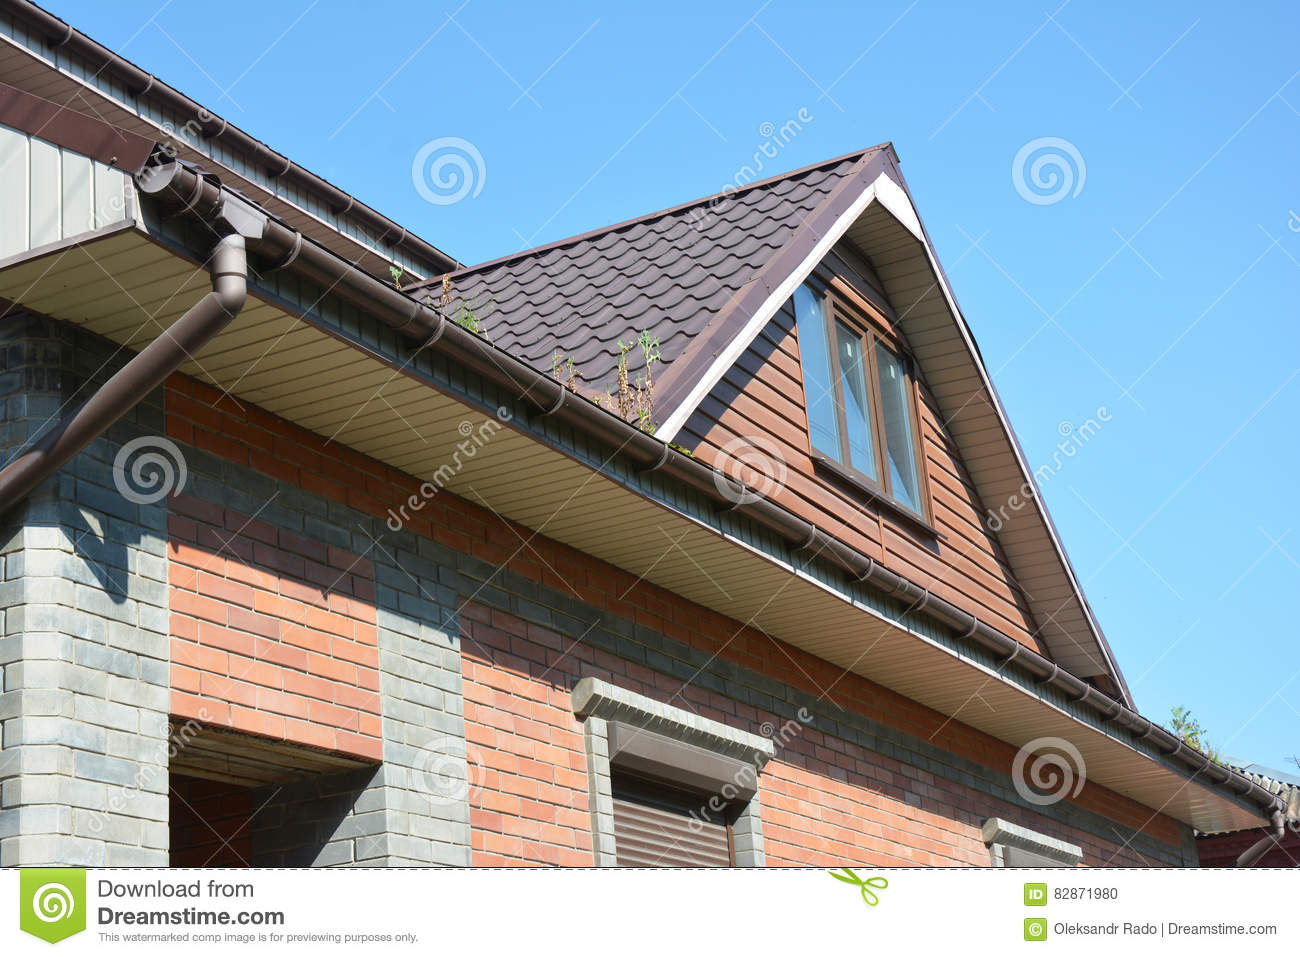 Man cleaning rain gutters inspecting house roof royalty for Does a house need gutters